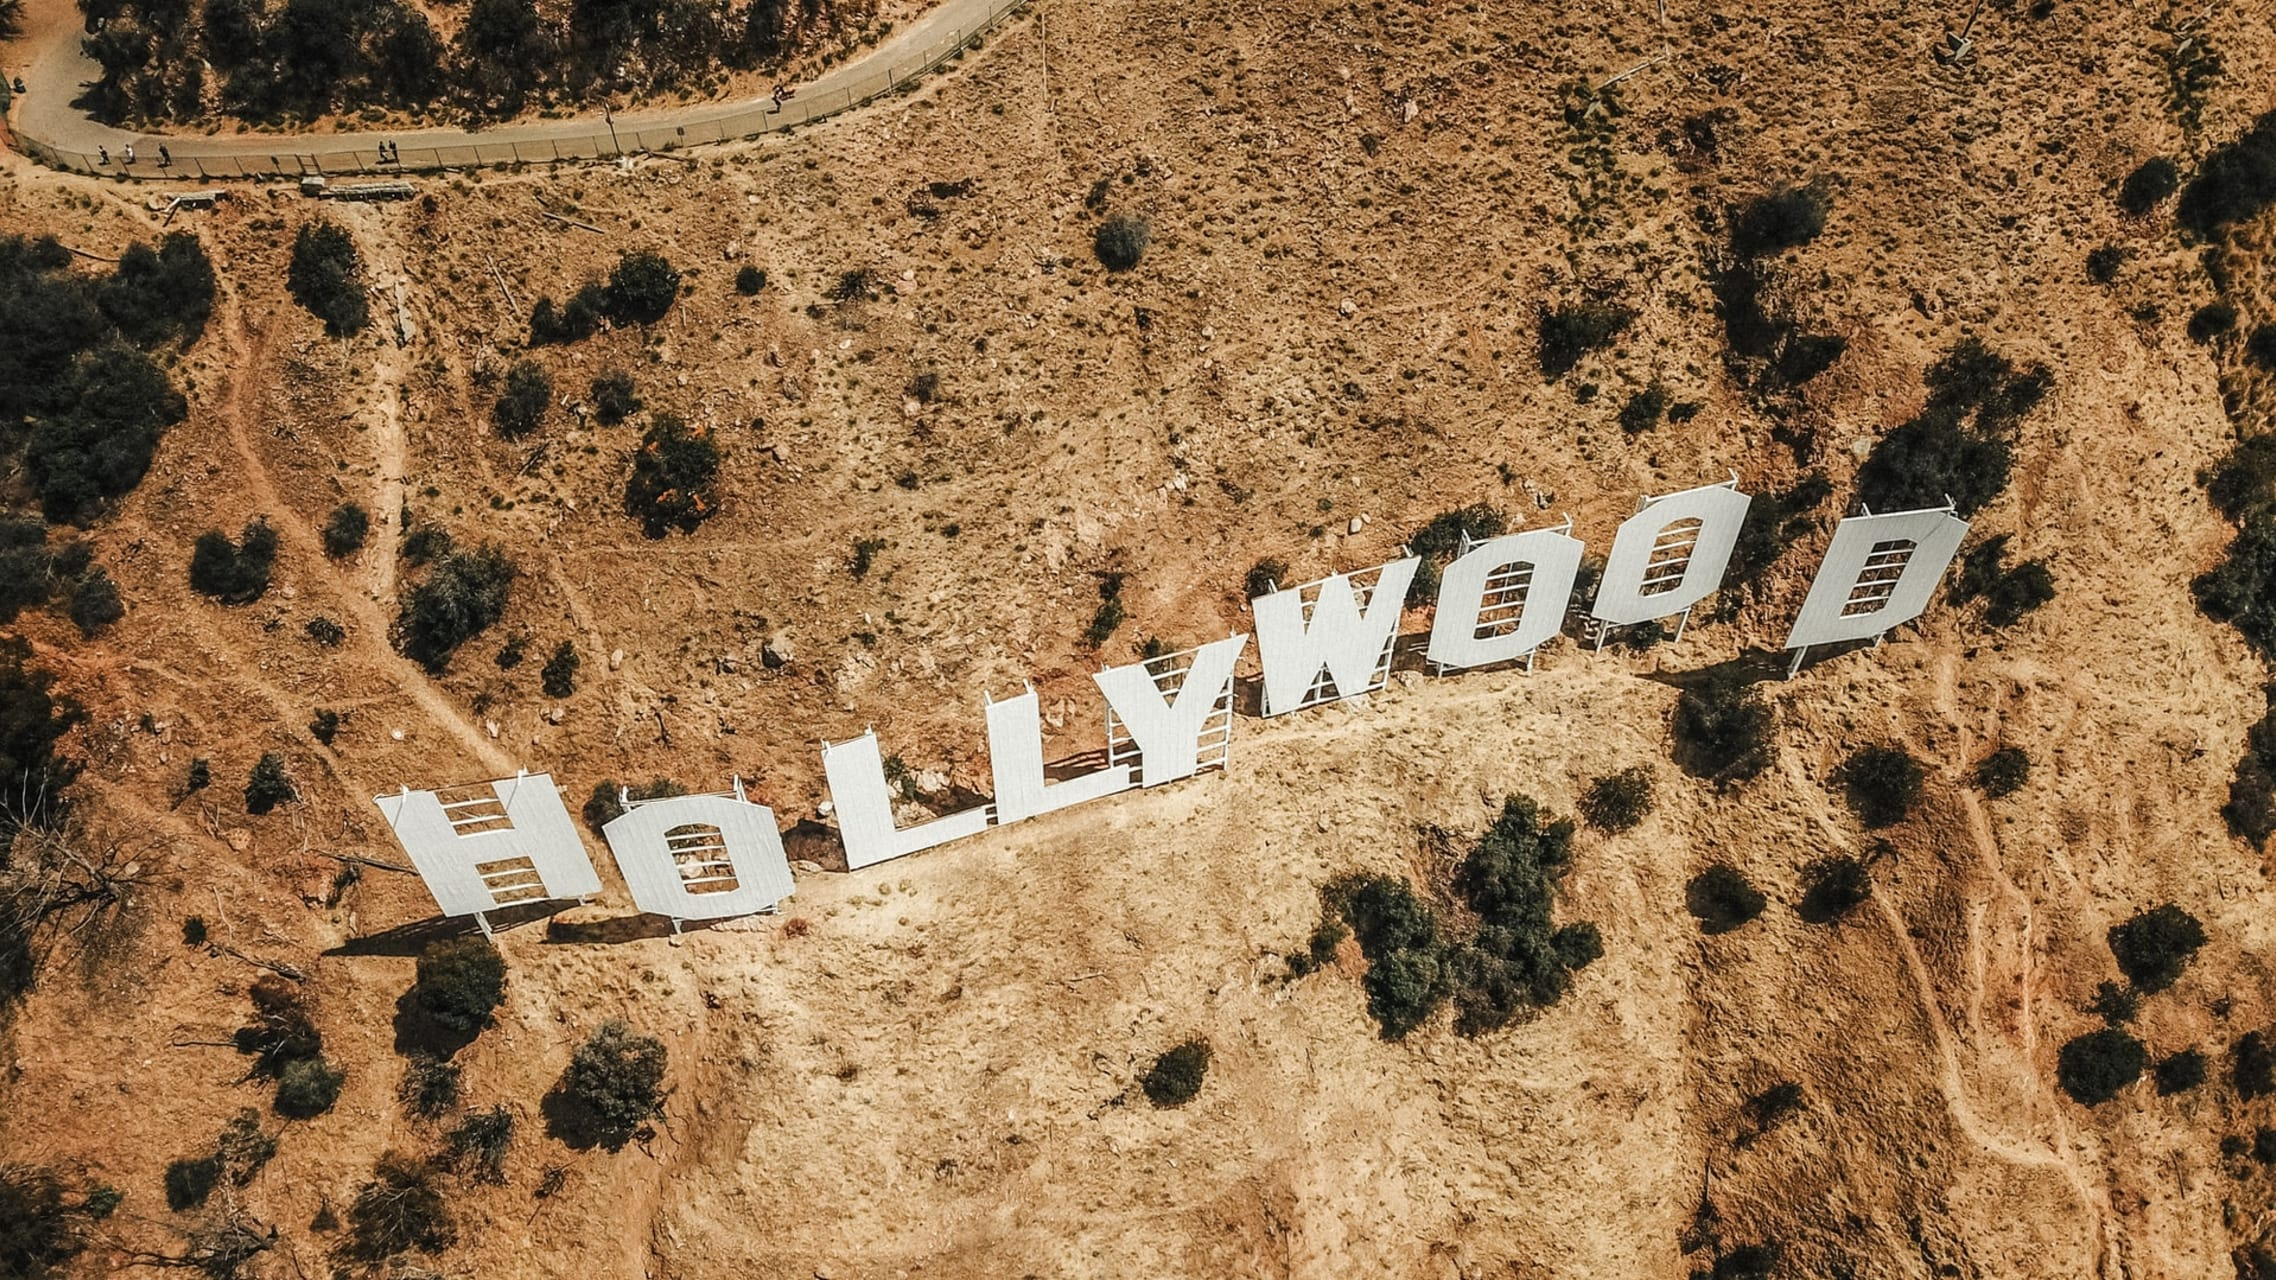 Los Angeles - A Hike to the Hollywood Sign